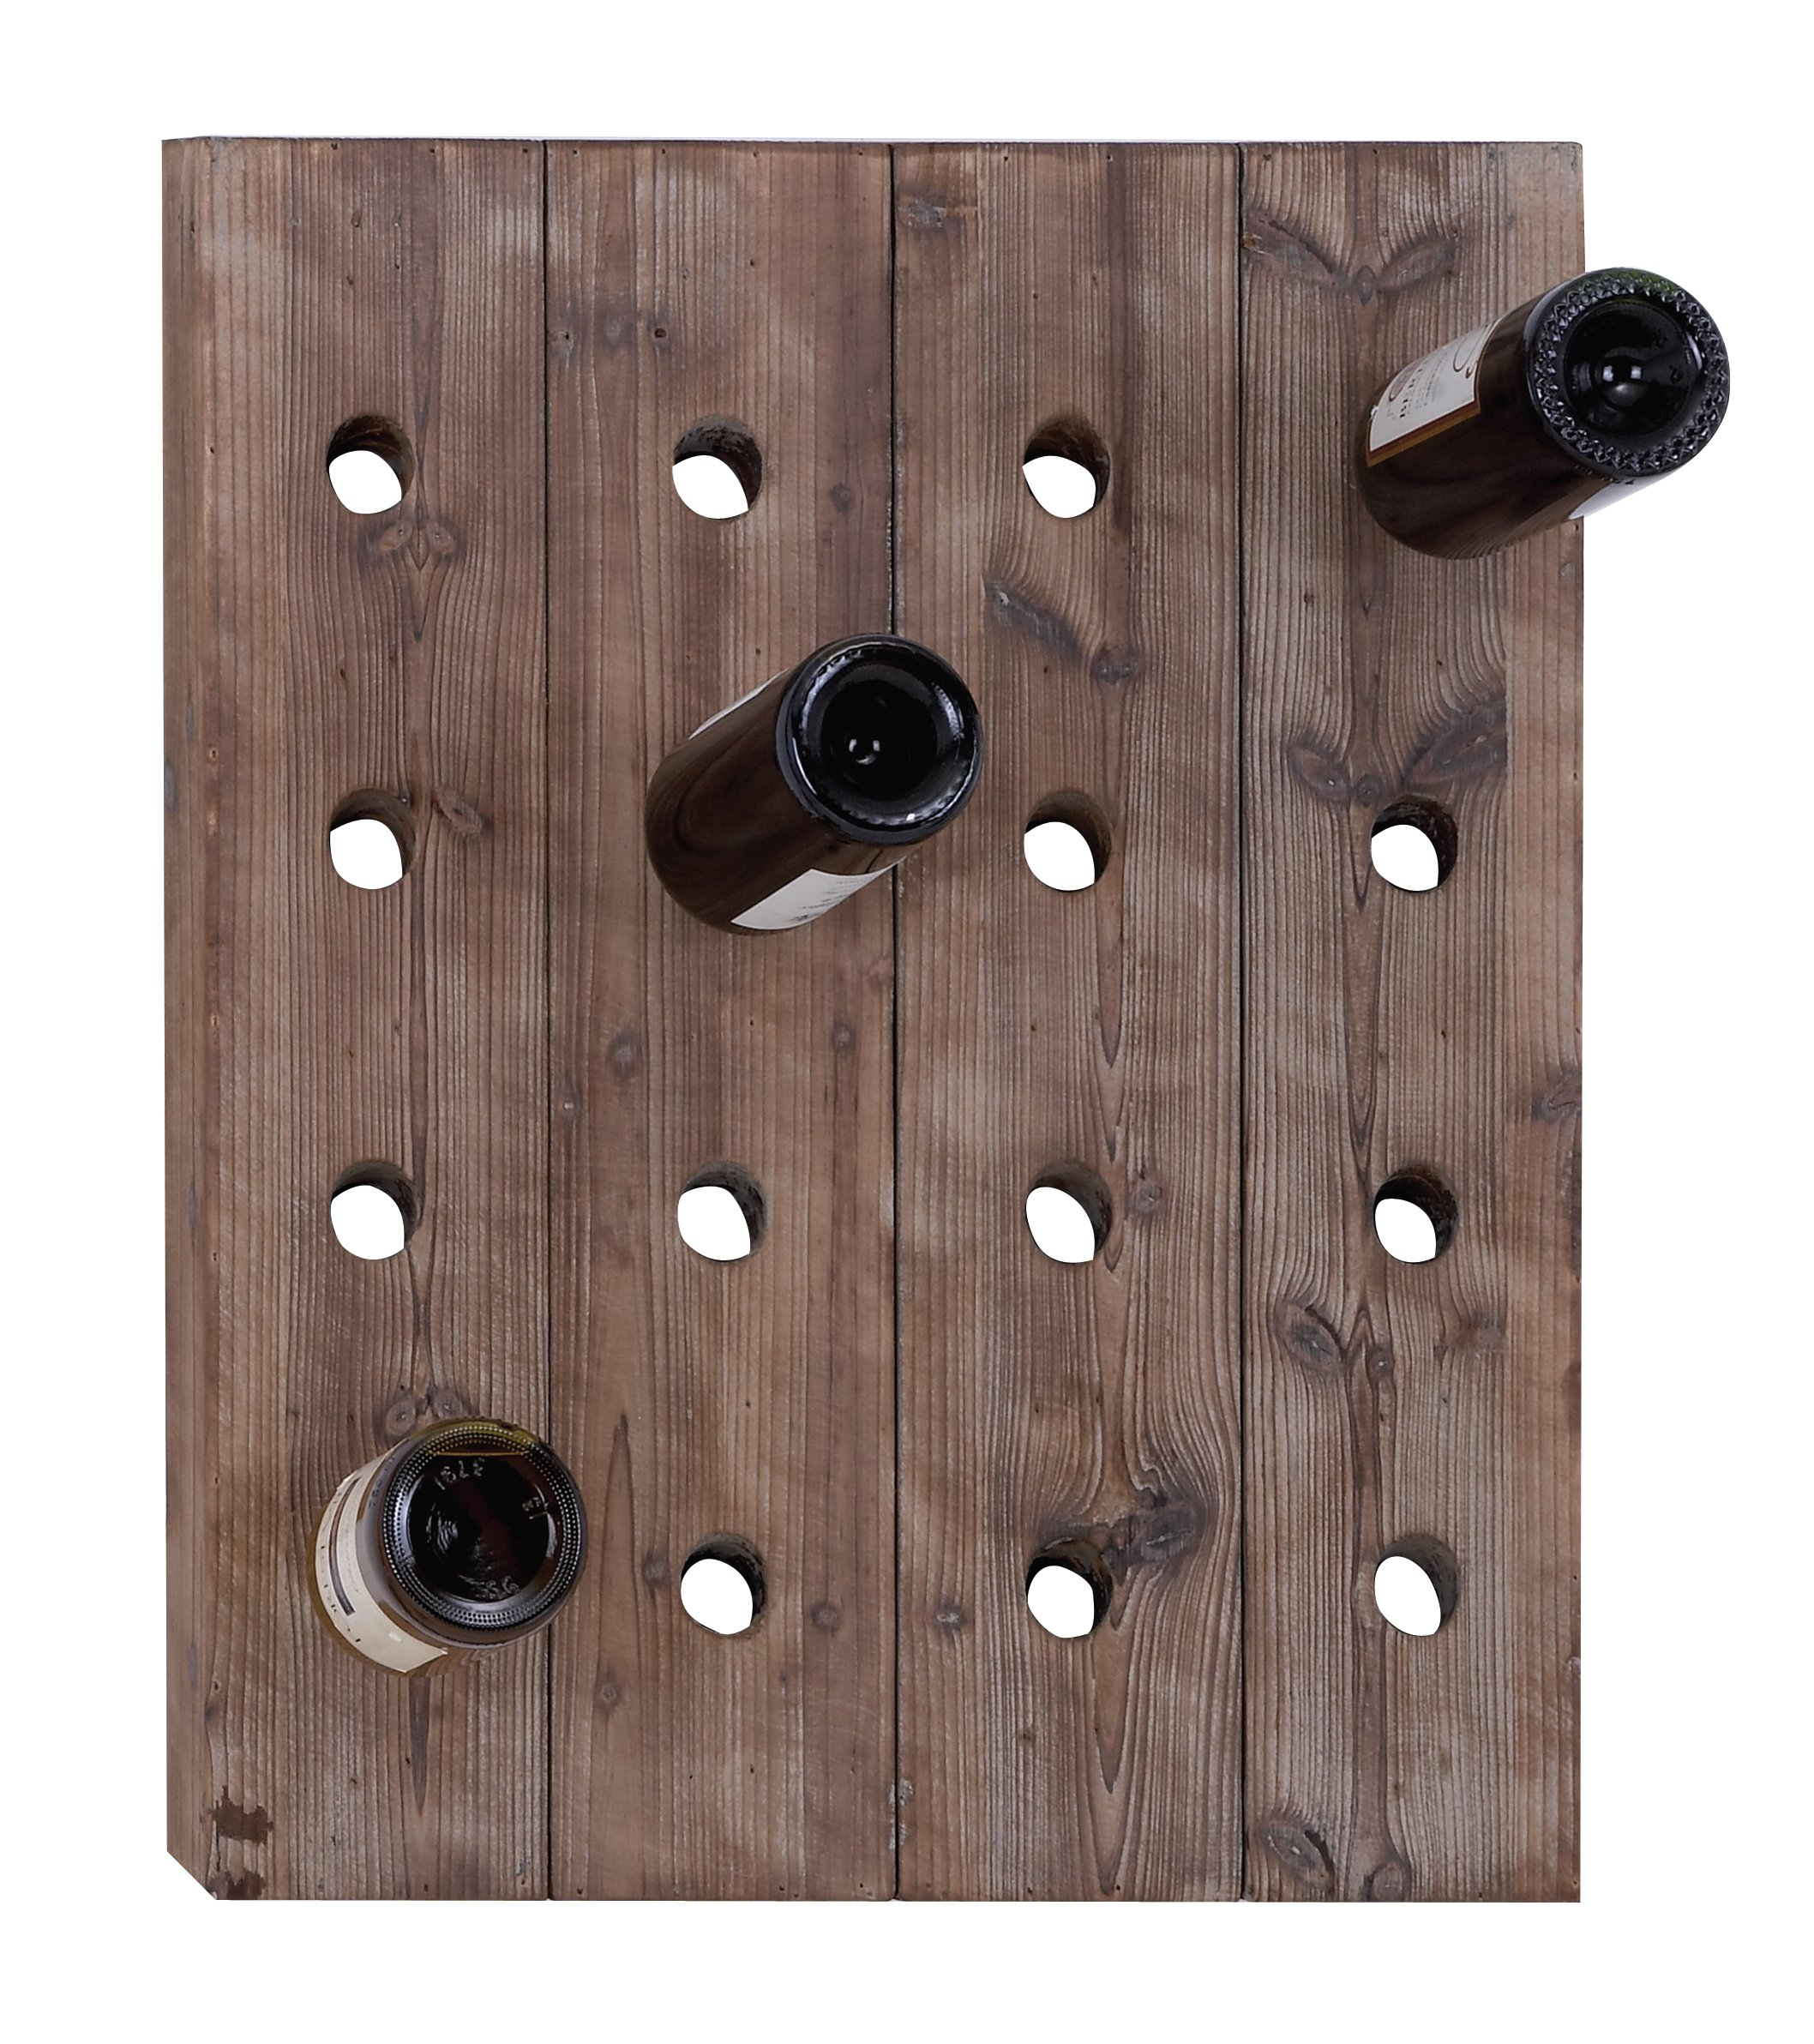 Deco 79 55414 Rustic Reclaimed Wood Hanging Wine Rack with 16 Bottle Pegboard, 25'' x 21''